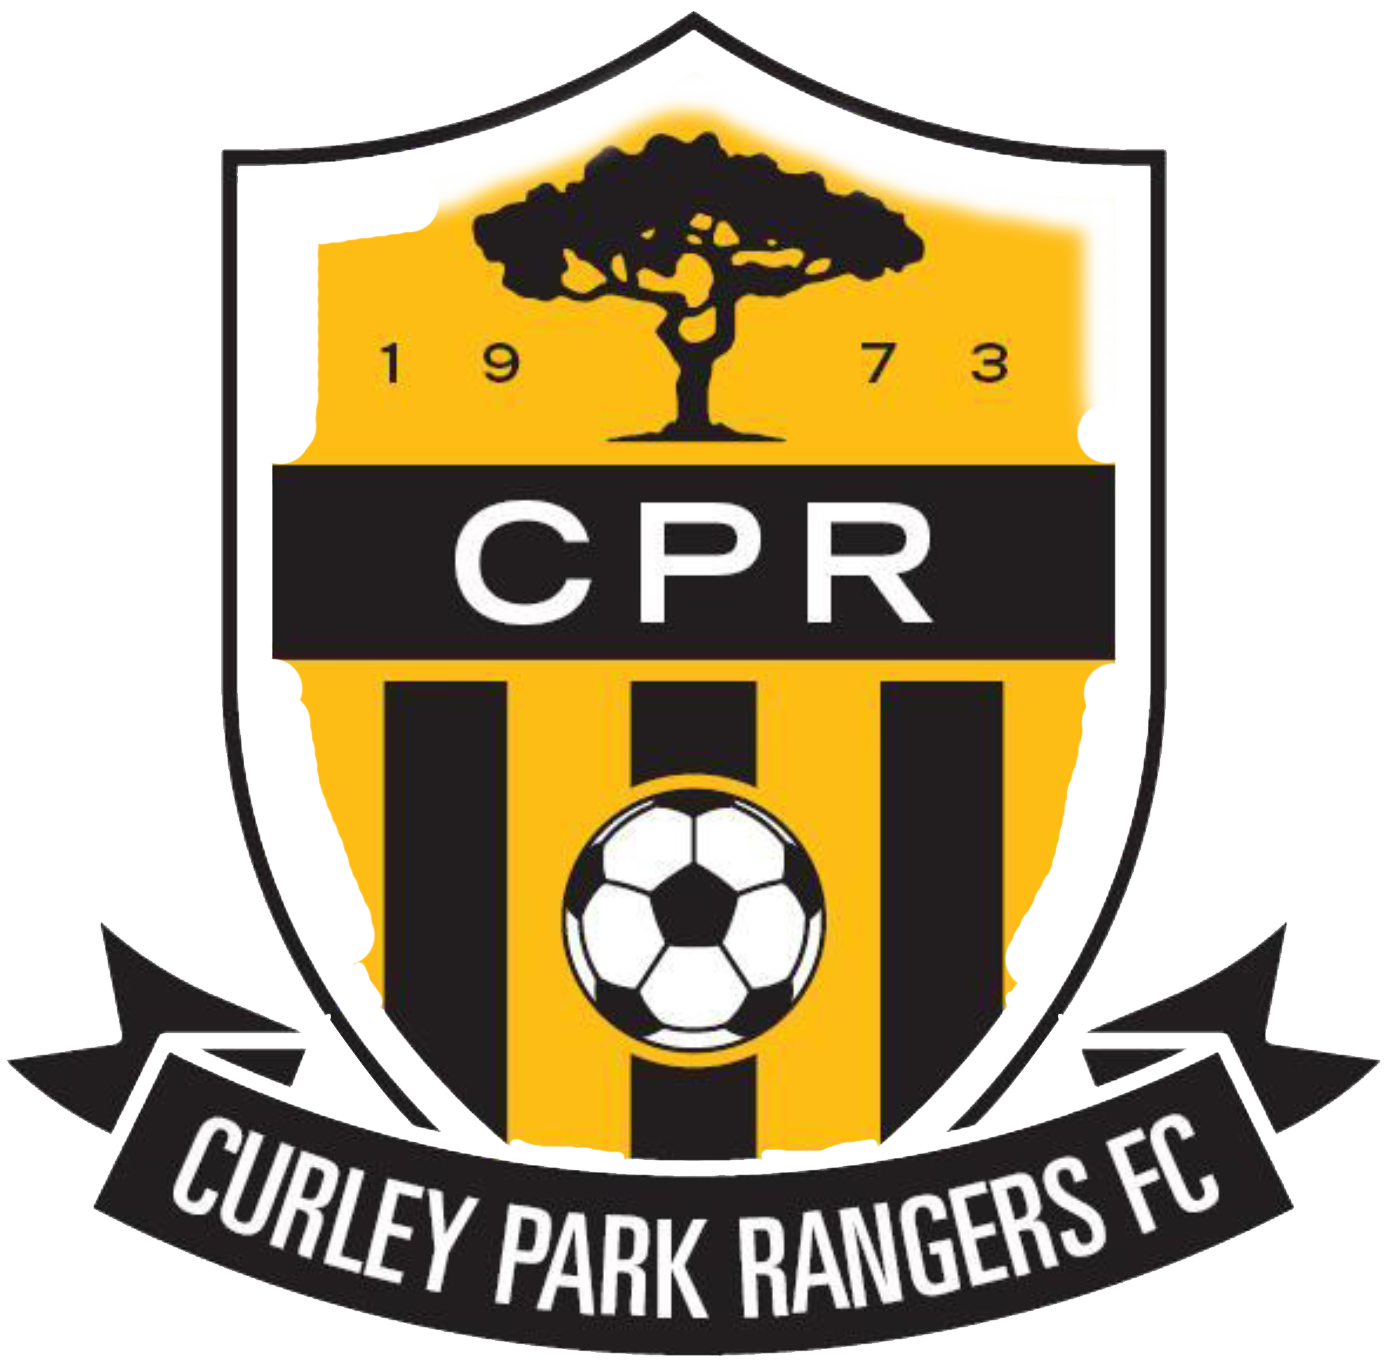 Curley Park Rangers